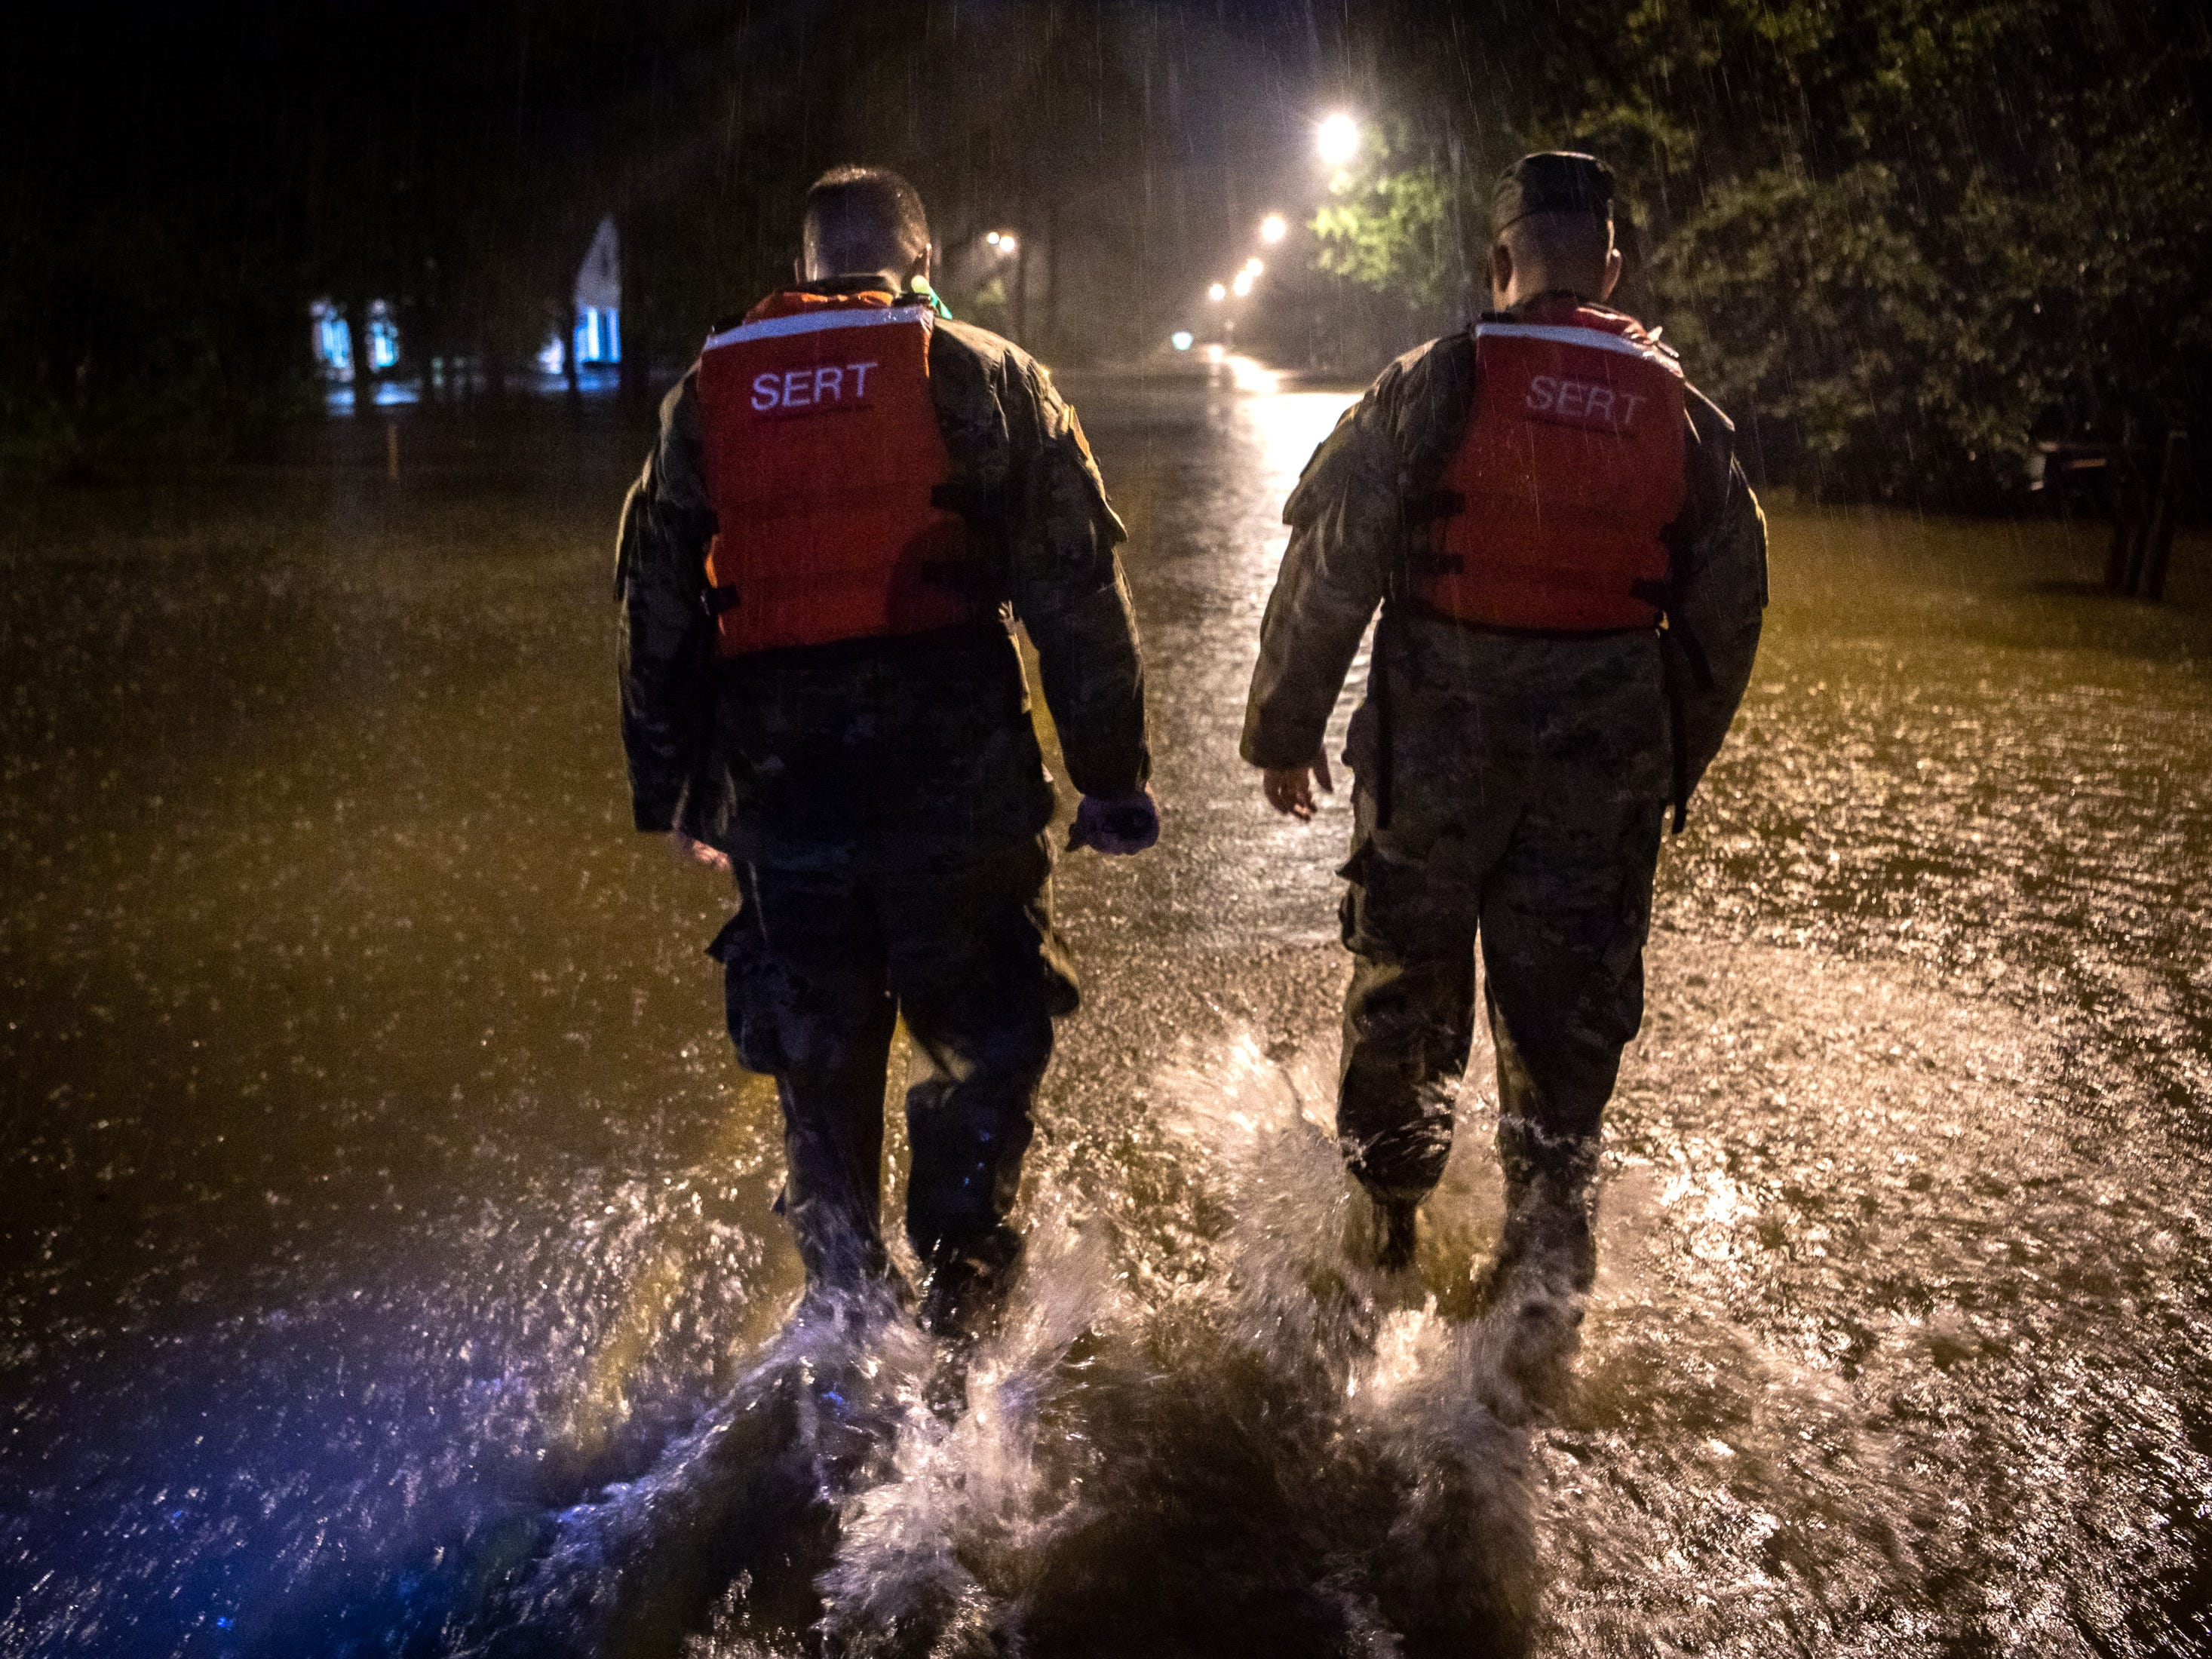 CSM Sid Baker, left, and 1SG Christopher Jones, right, of the North Carolina National Guard patrol a flooded neighborhood as rain from Tropical Storm Florence continues to fall on Lumberton, N.C., Saturday, Sept. 15, 2018.